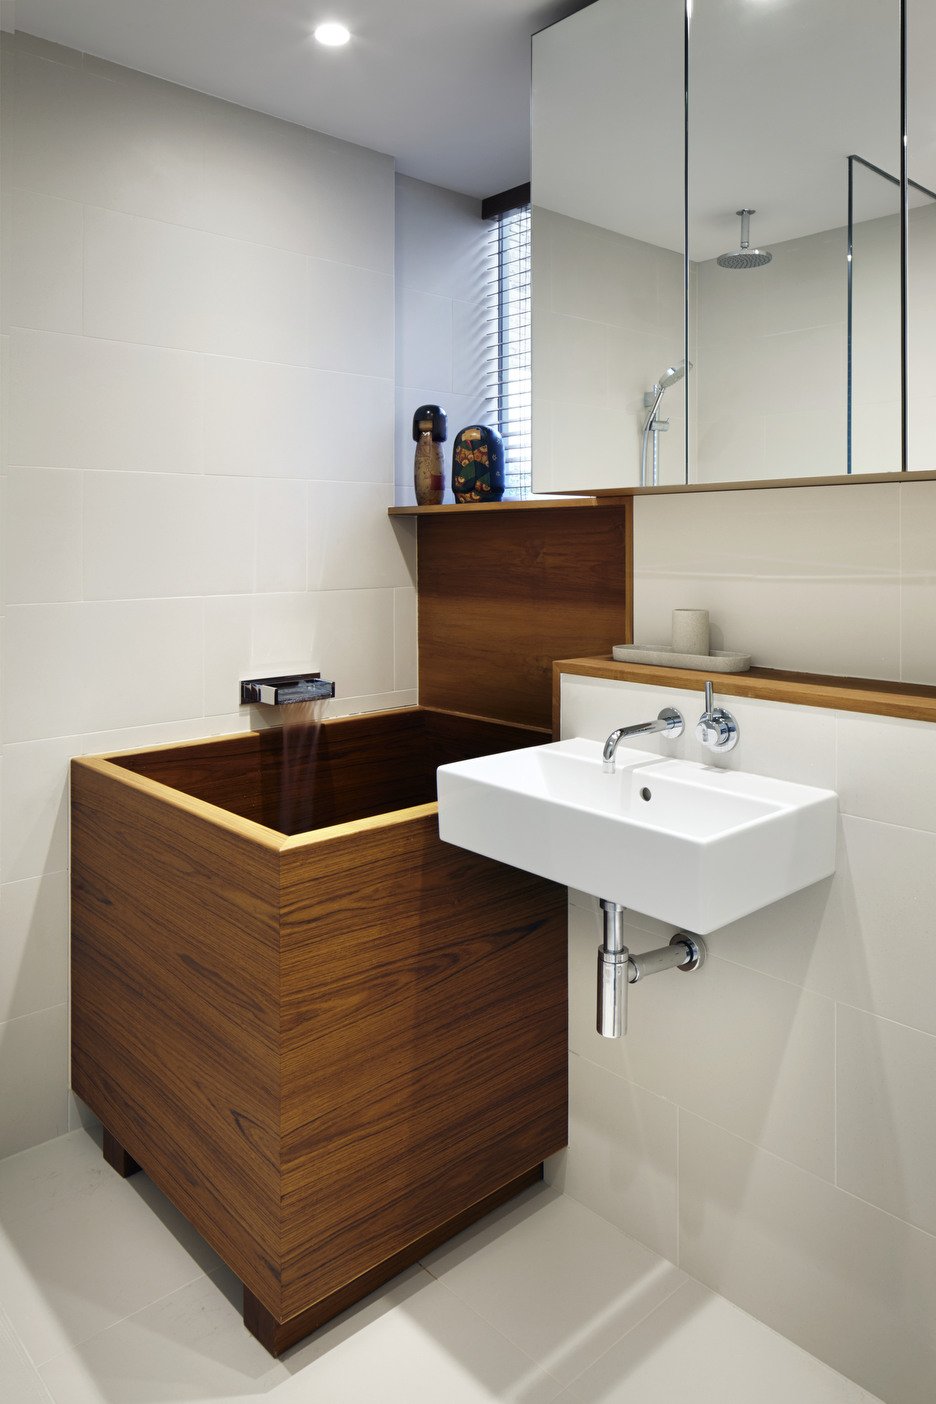 Bathroom Shelf and Bathroom Cupboard with Mirror - Photography - Jack Hobhouse